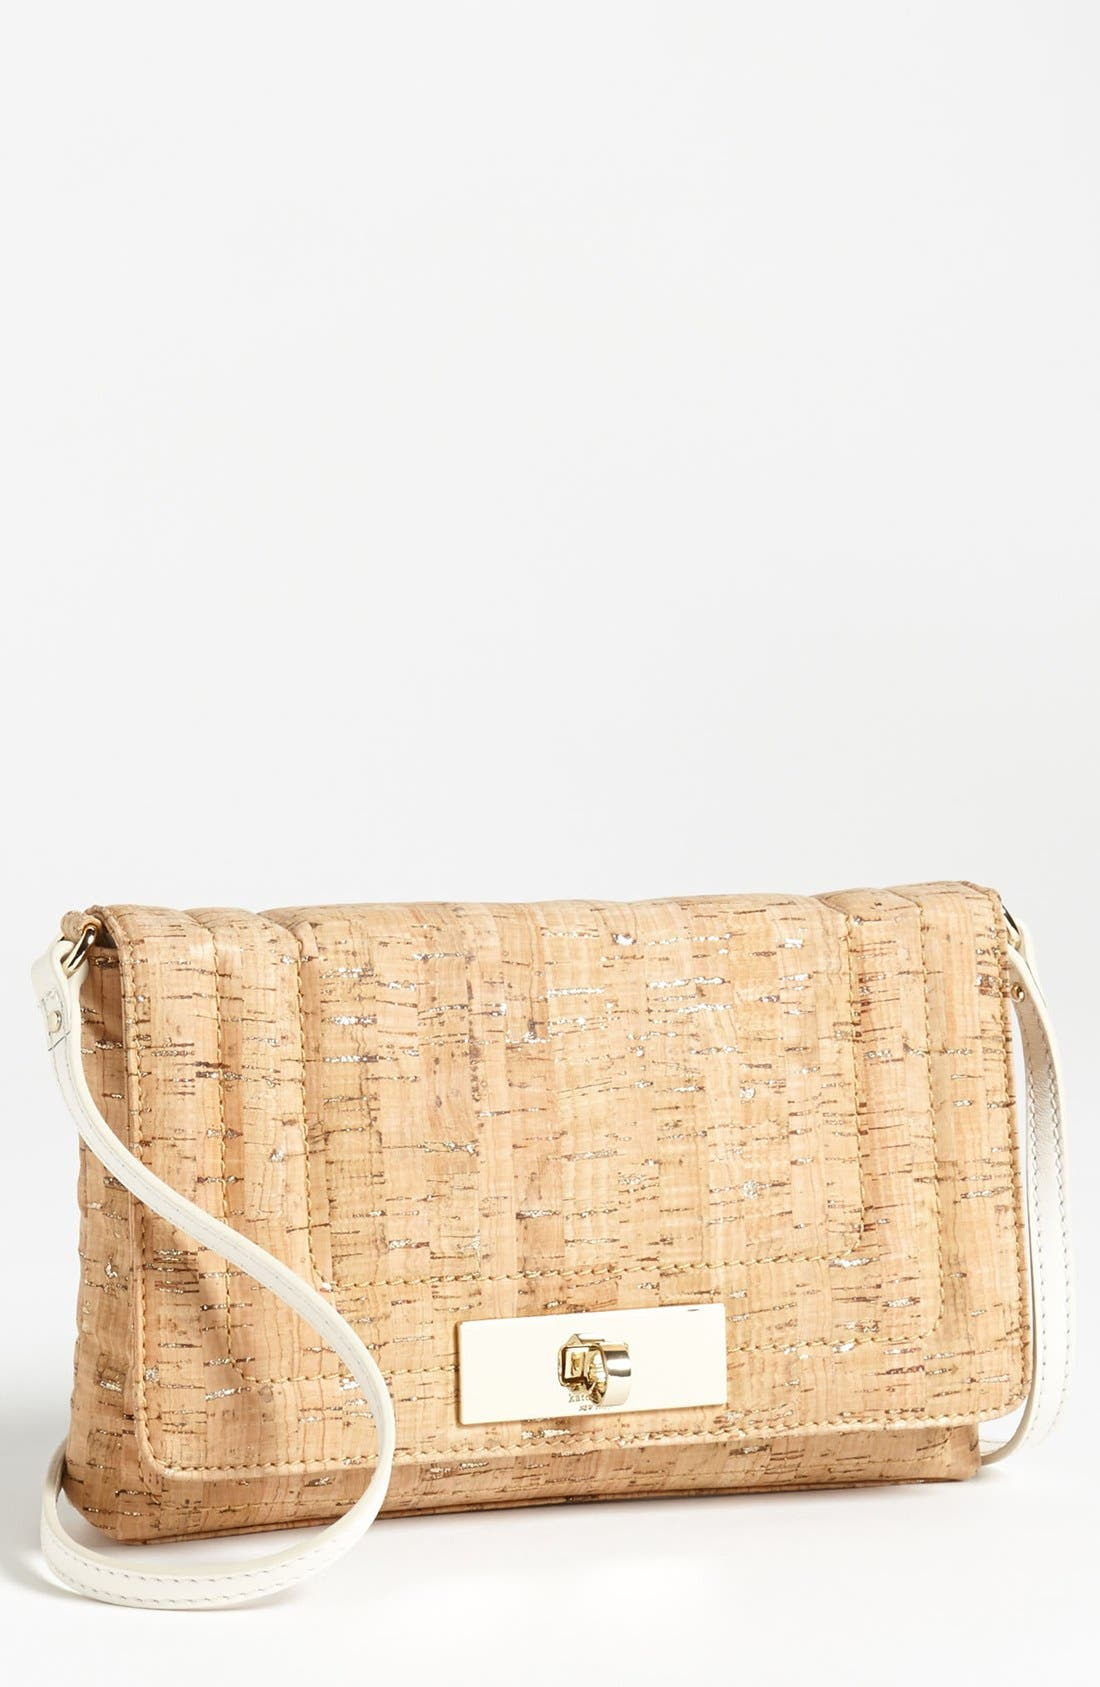 Alternate Image 1 Selected - kate spade new york 'bay terrace - kristie' canvas crossbody bag